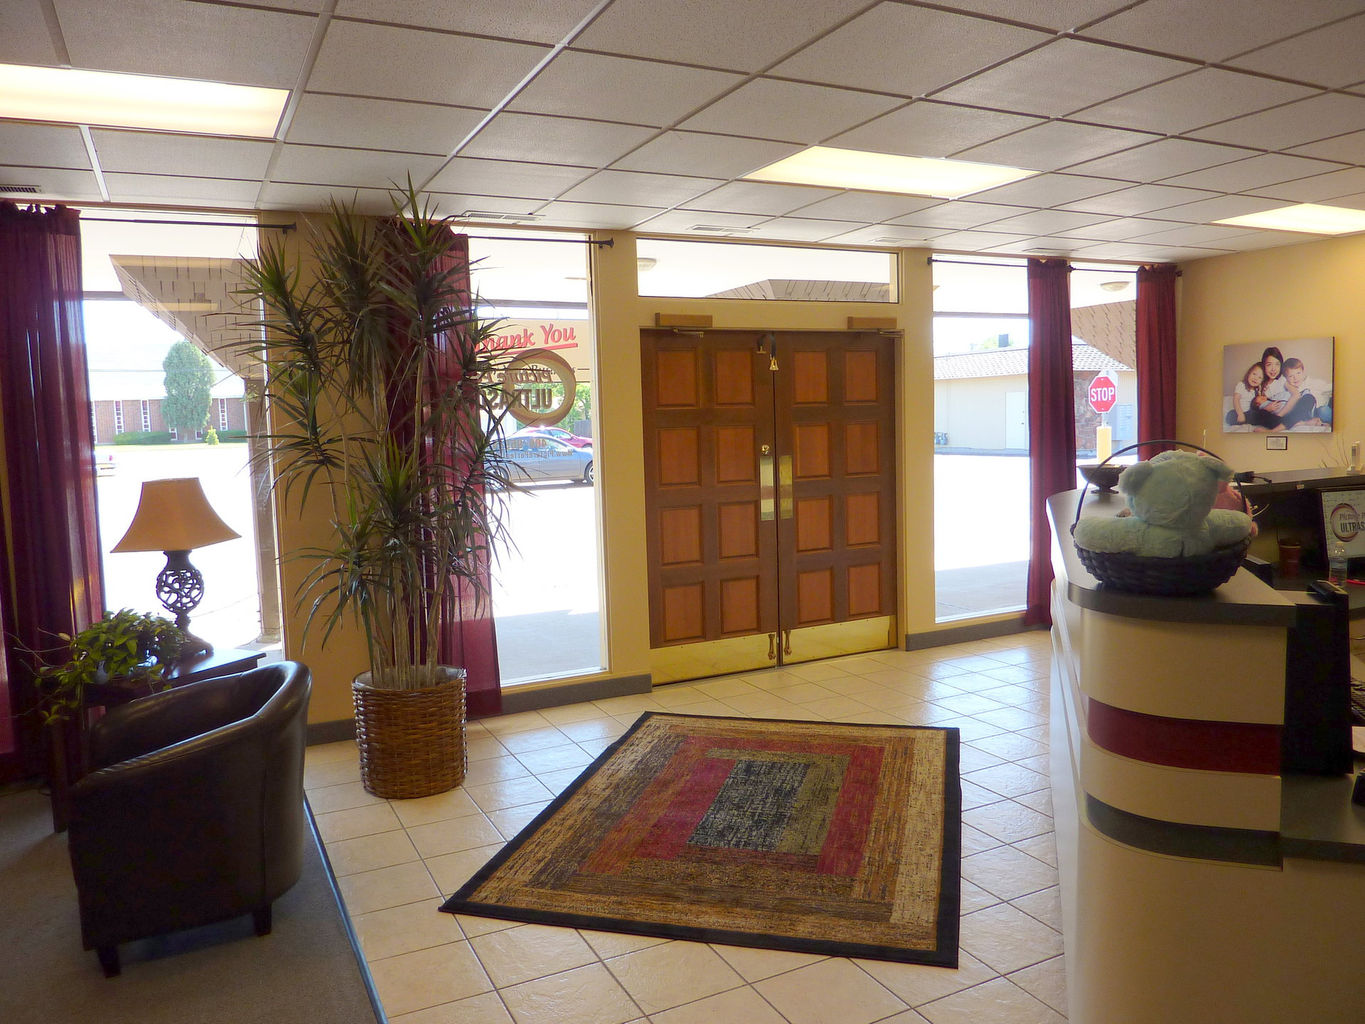 Welcoming Environment